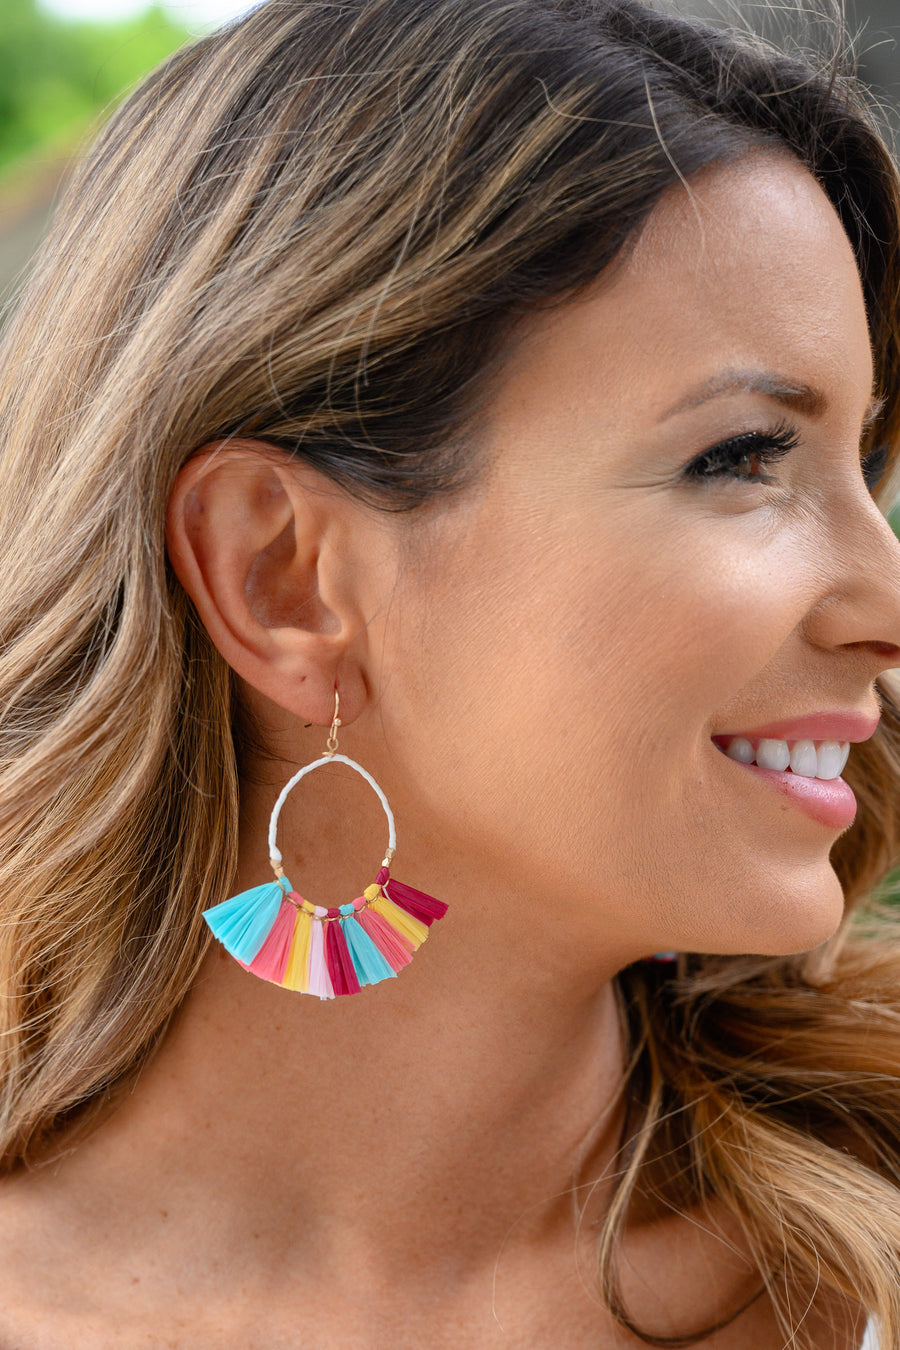 Your Biggest Fan Colorful Earrings women's multicolor hoop earrings, Closet Candy Boutique 1